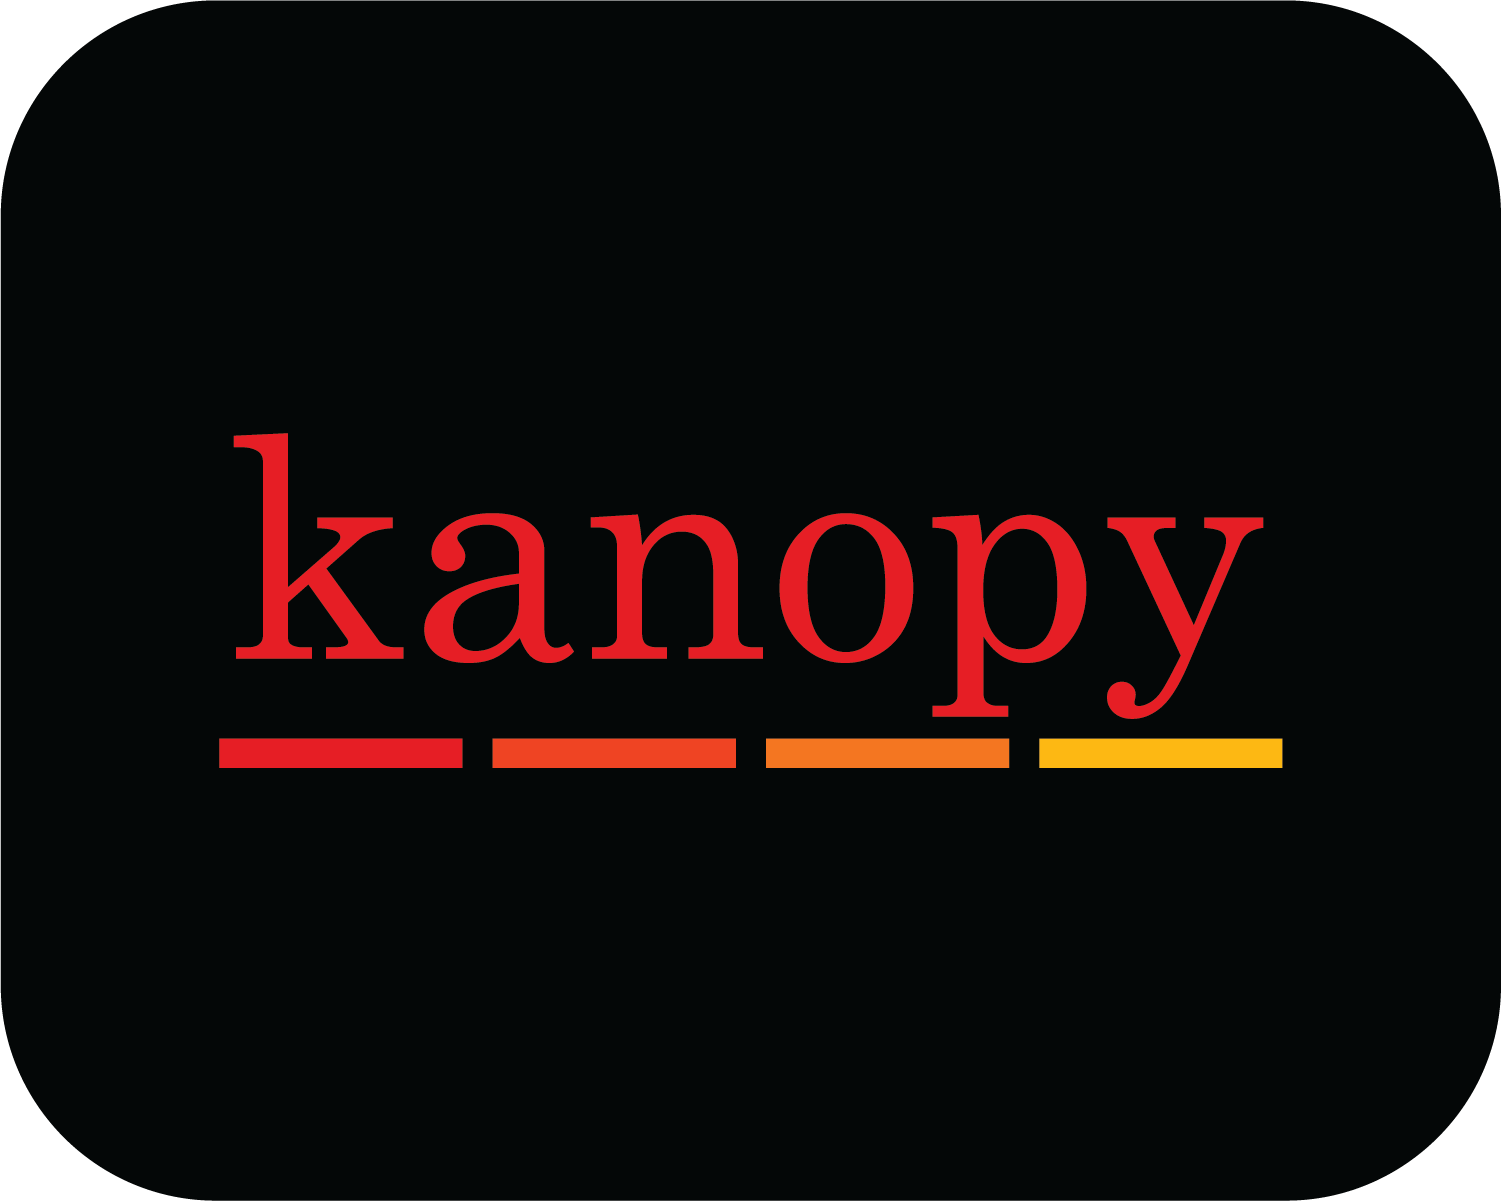 Kanopy-01.png